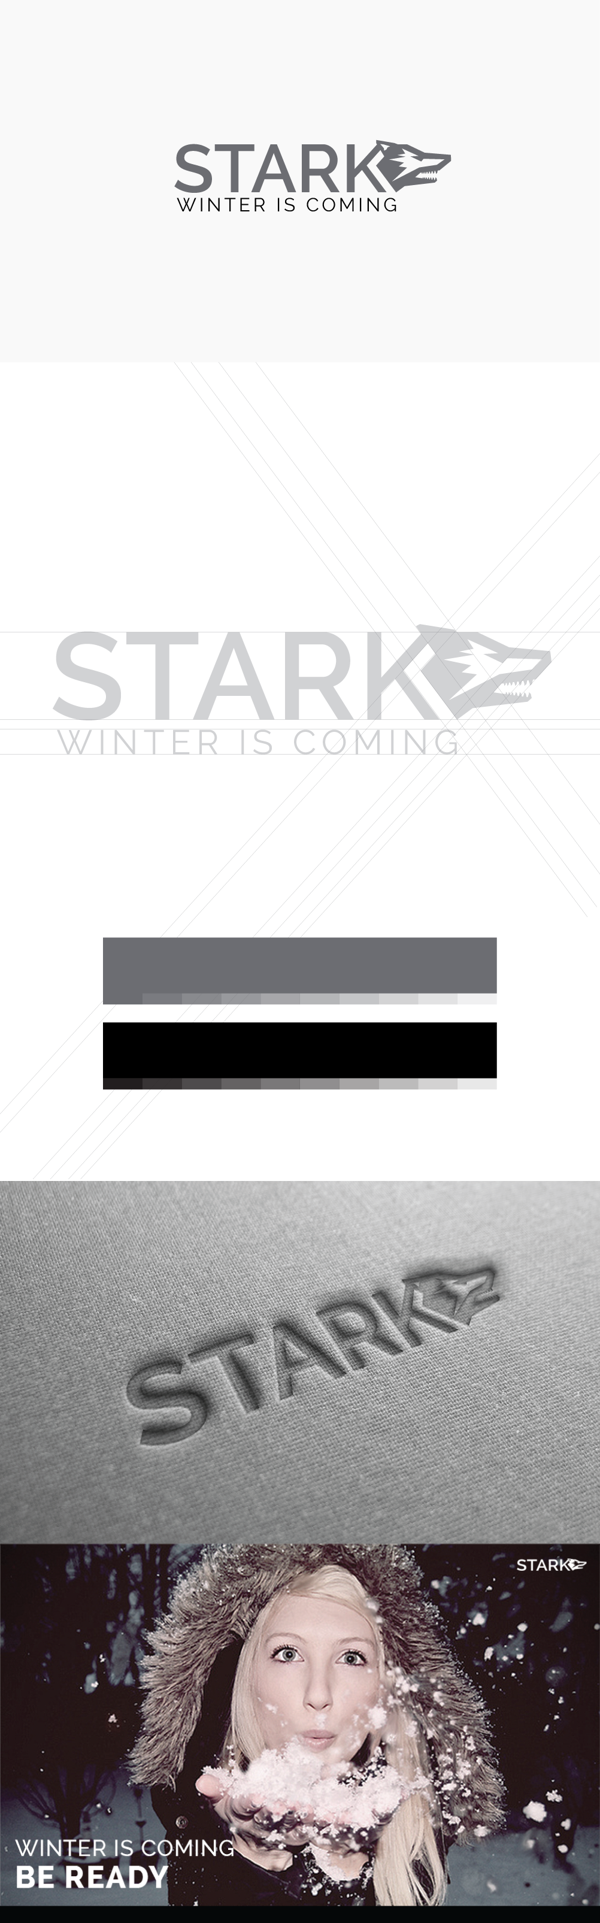 stark-got-lenewsstbarth